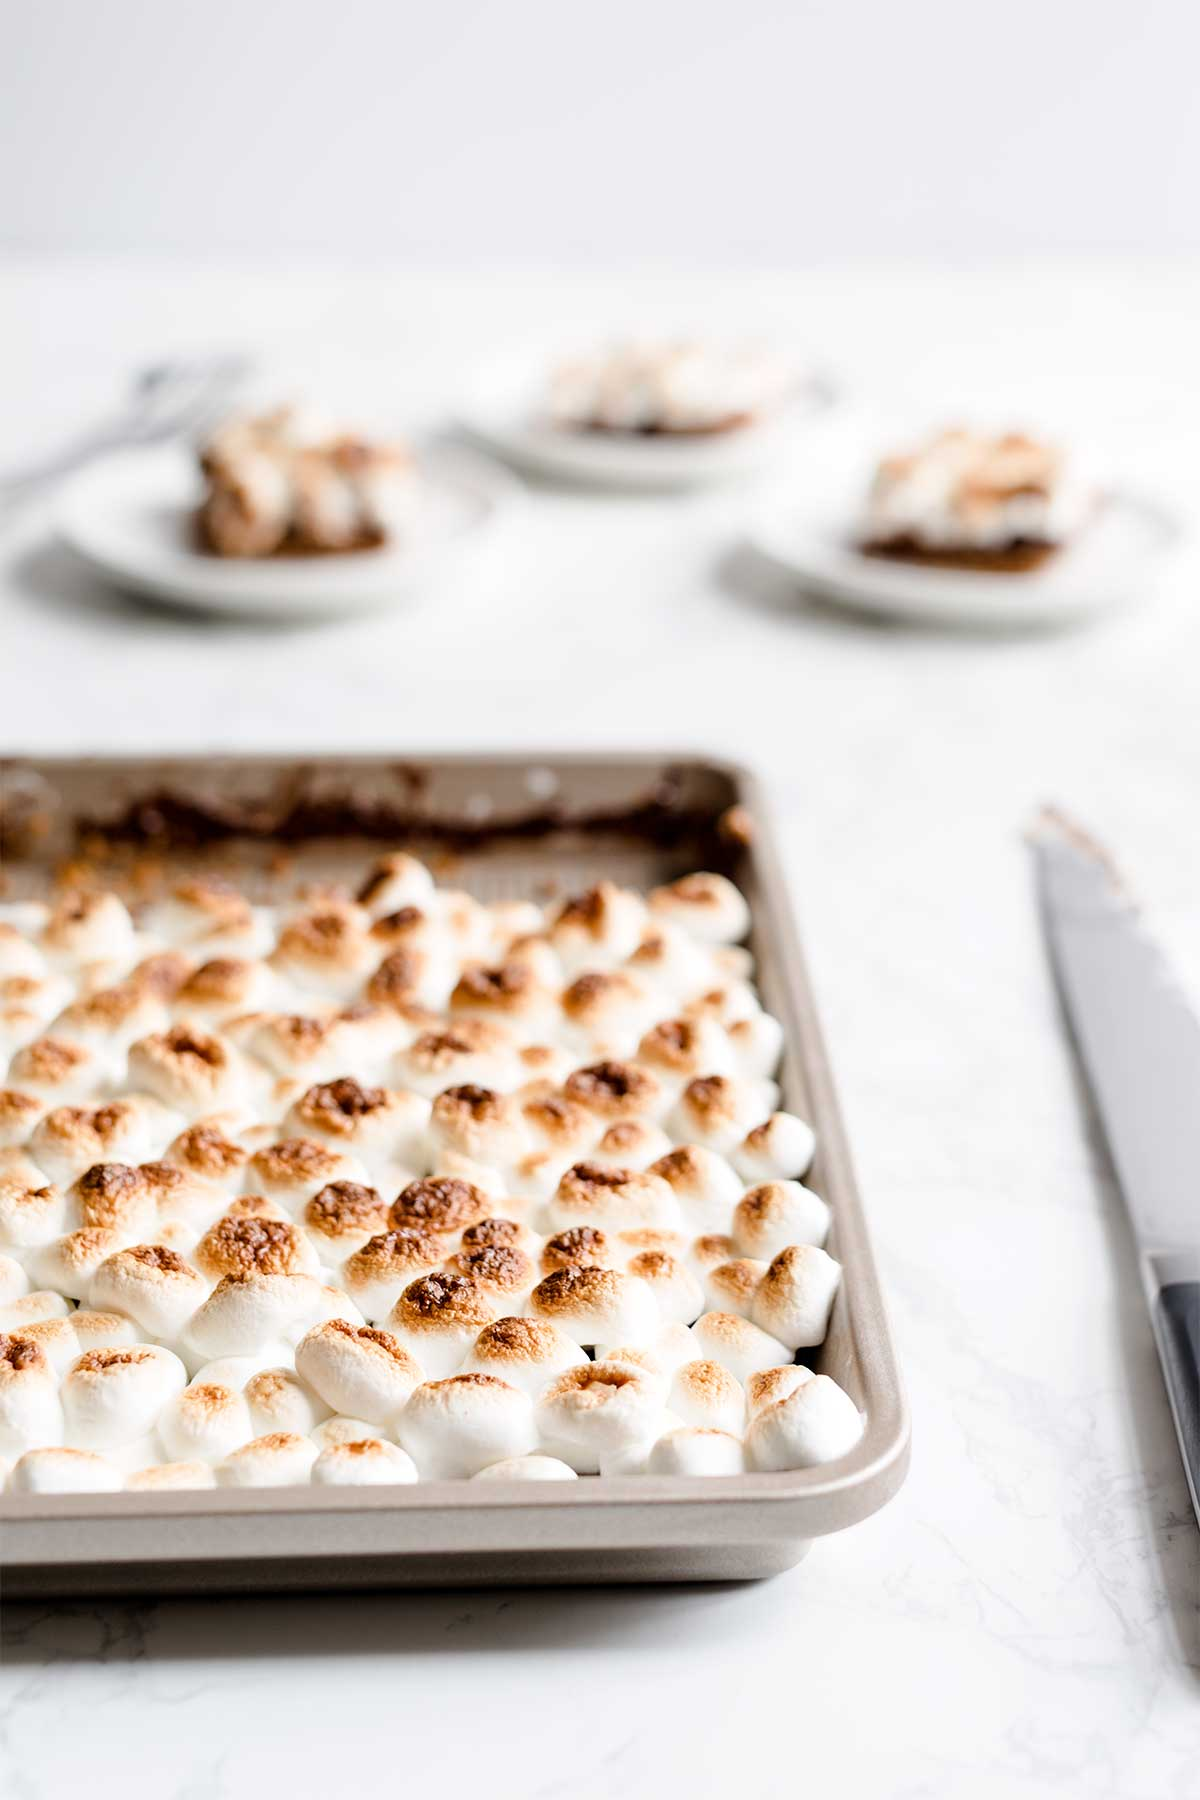 S'mores slab pie in front of 3 slices of pie.